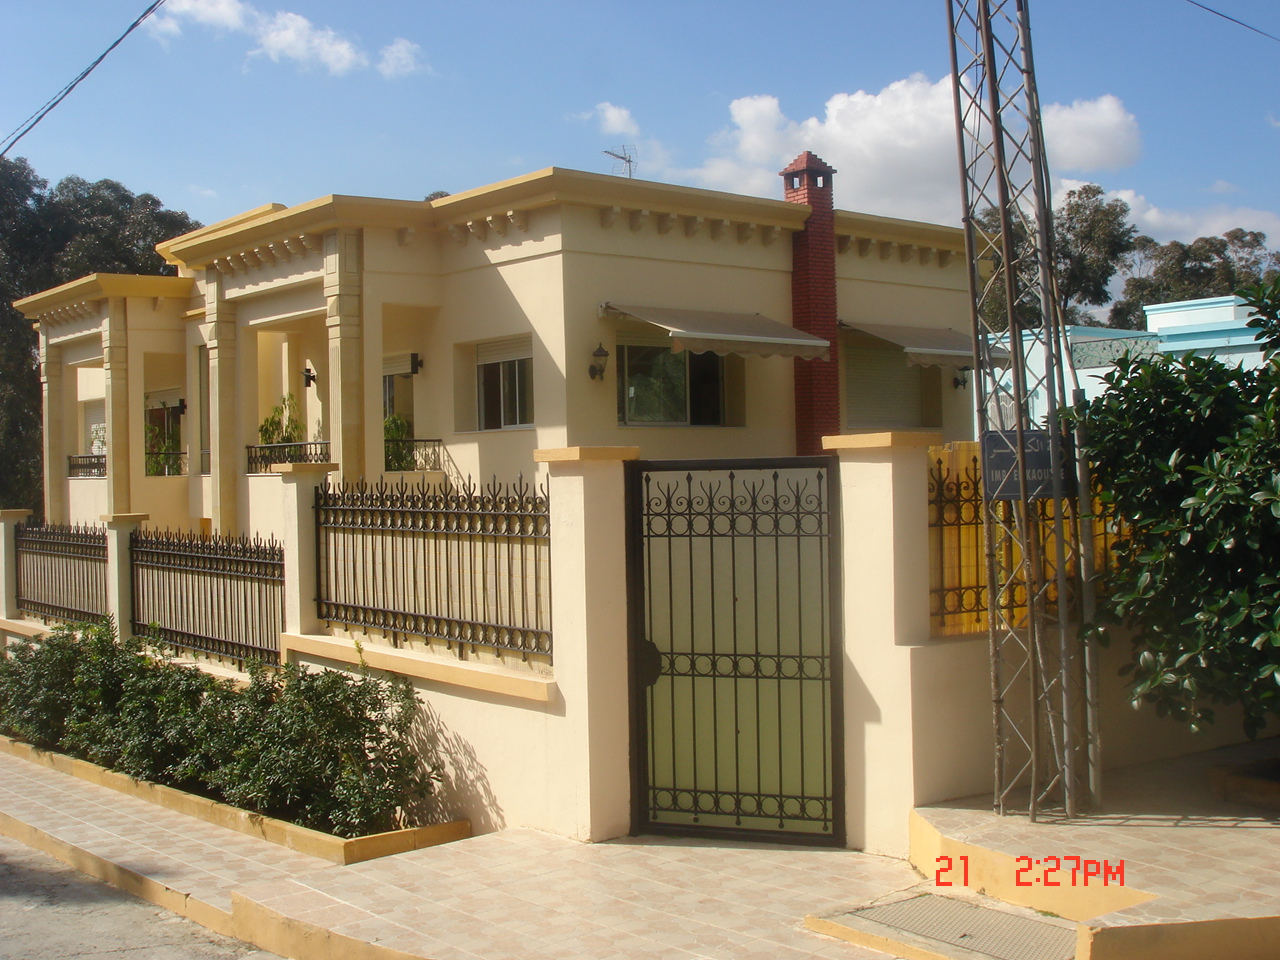 D coration gitane gascity for - Decoration villa en tunisie ...